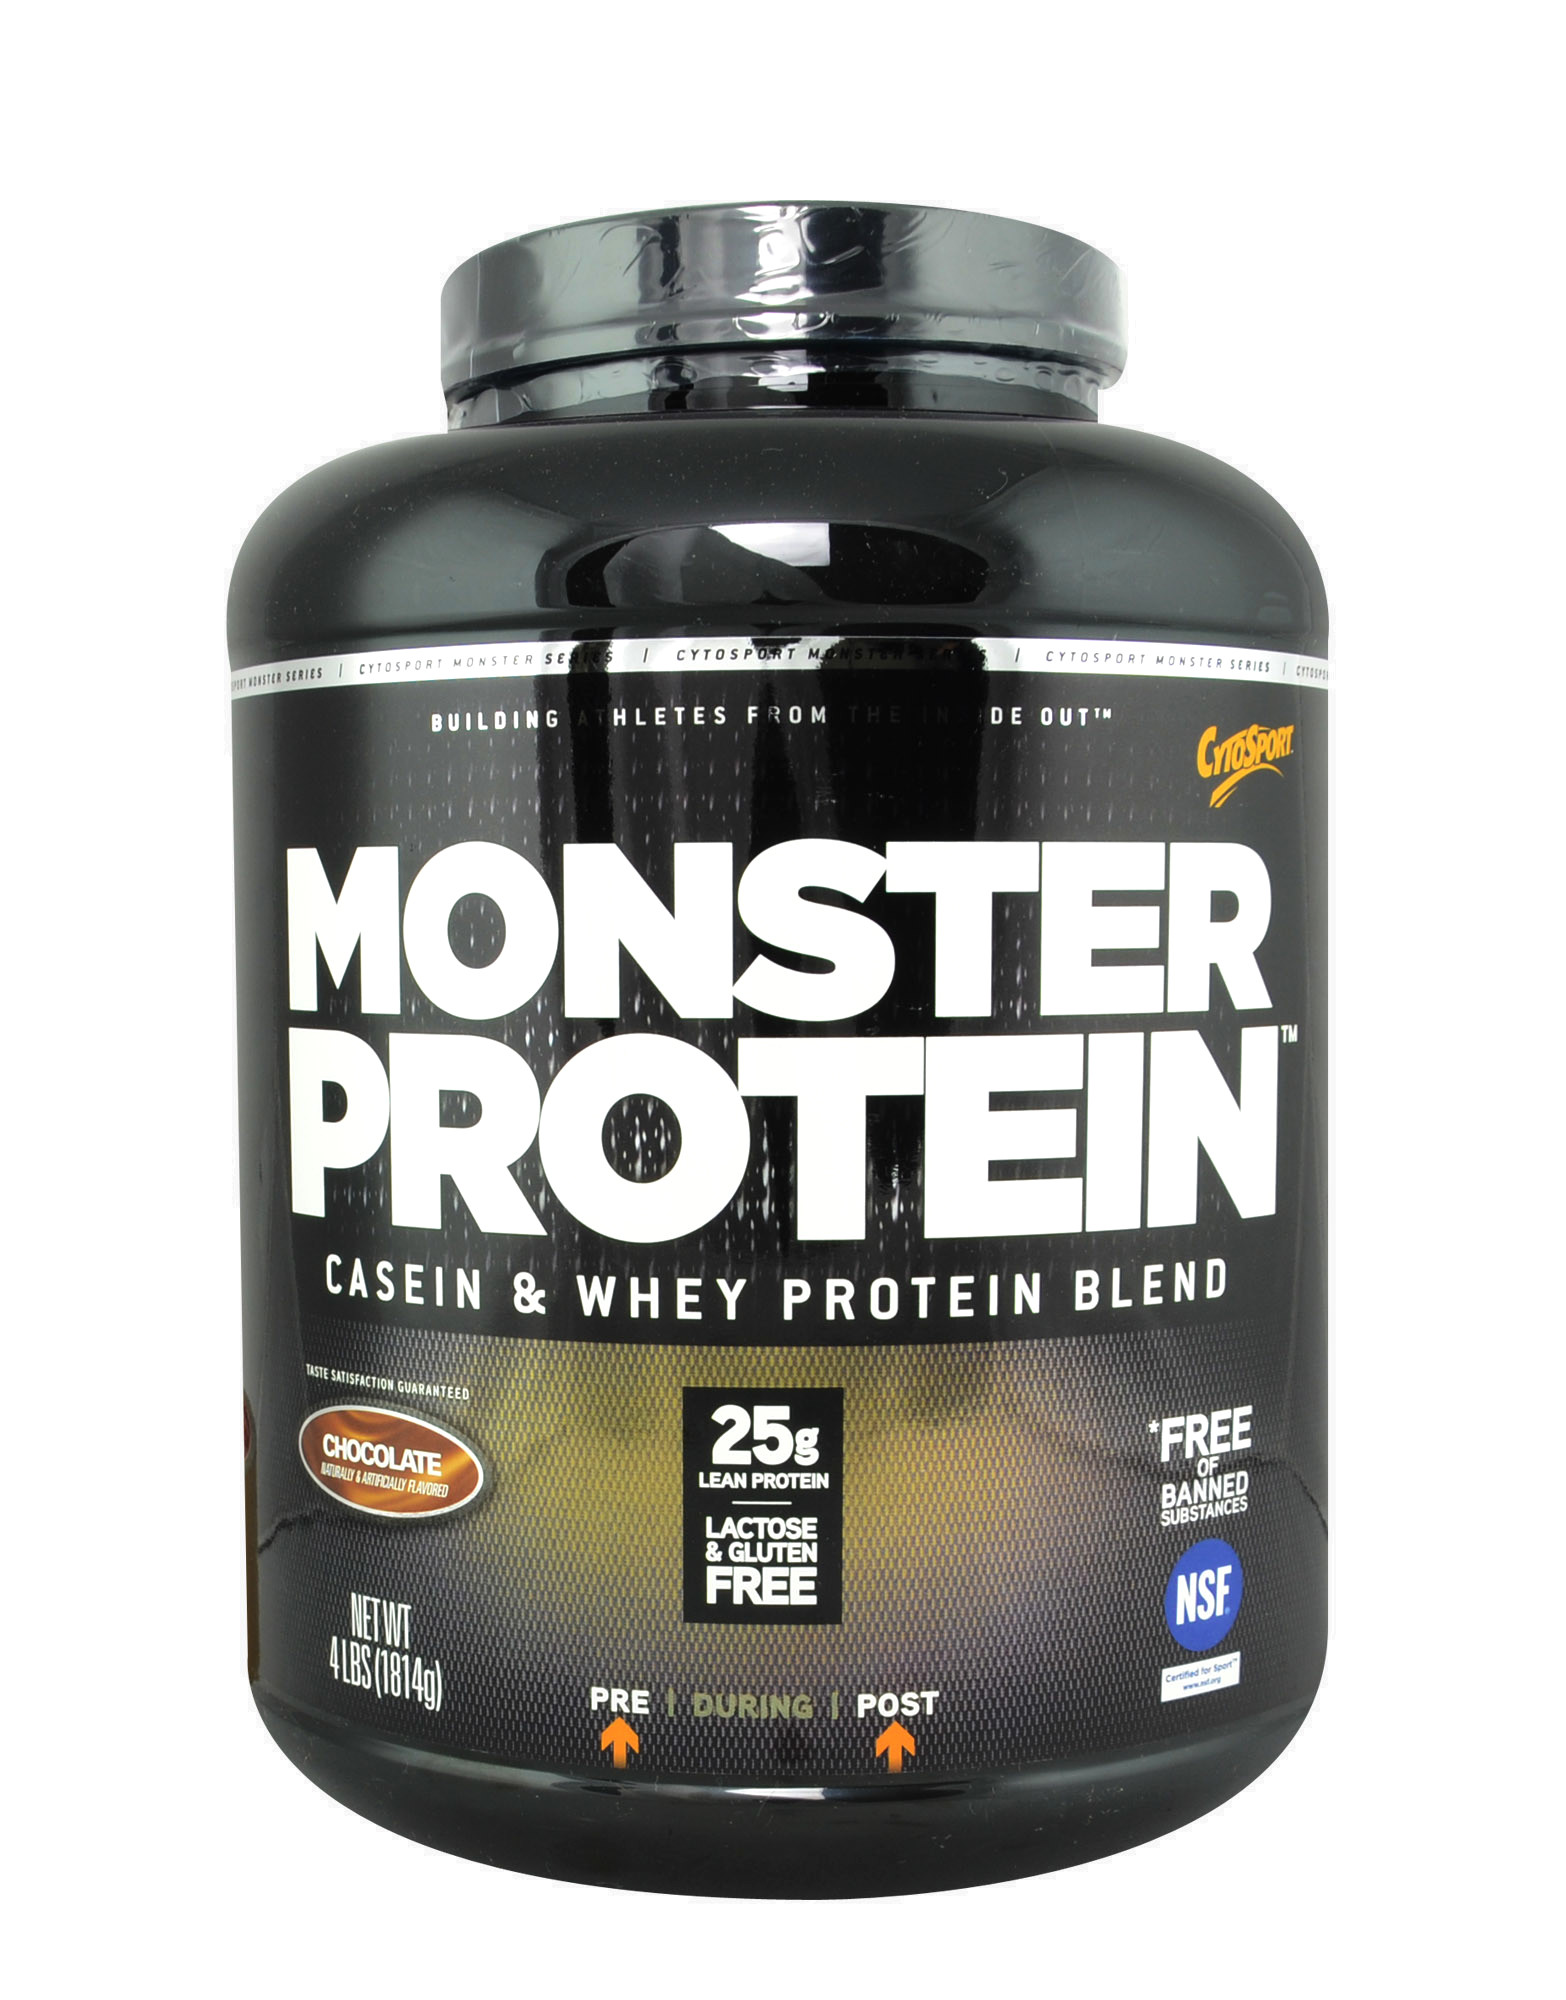 Monster food protein